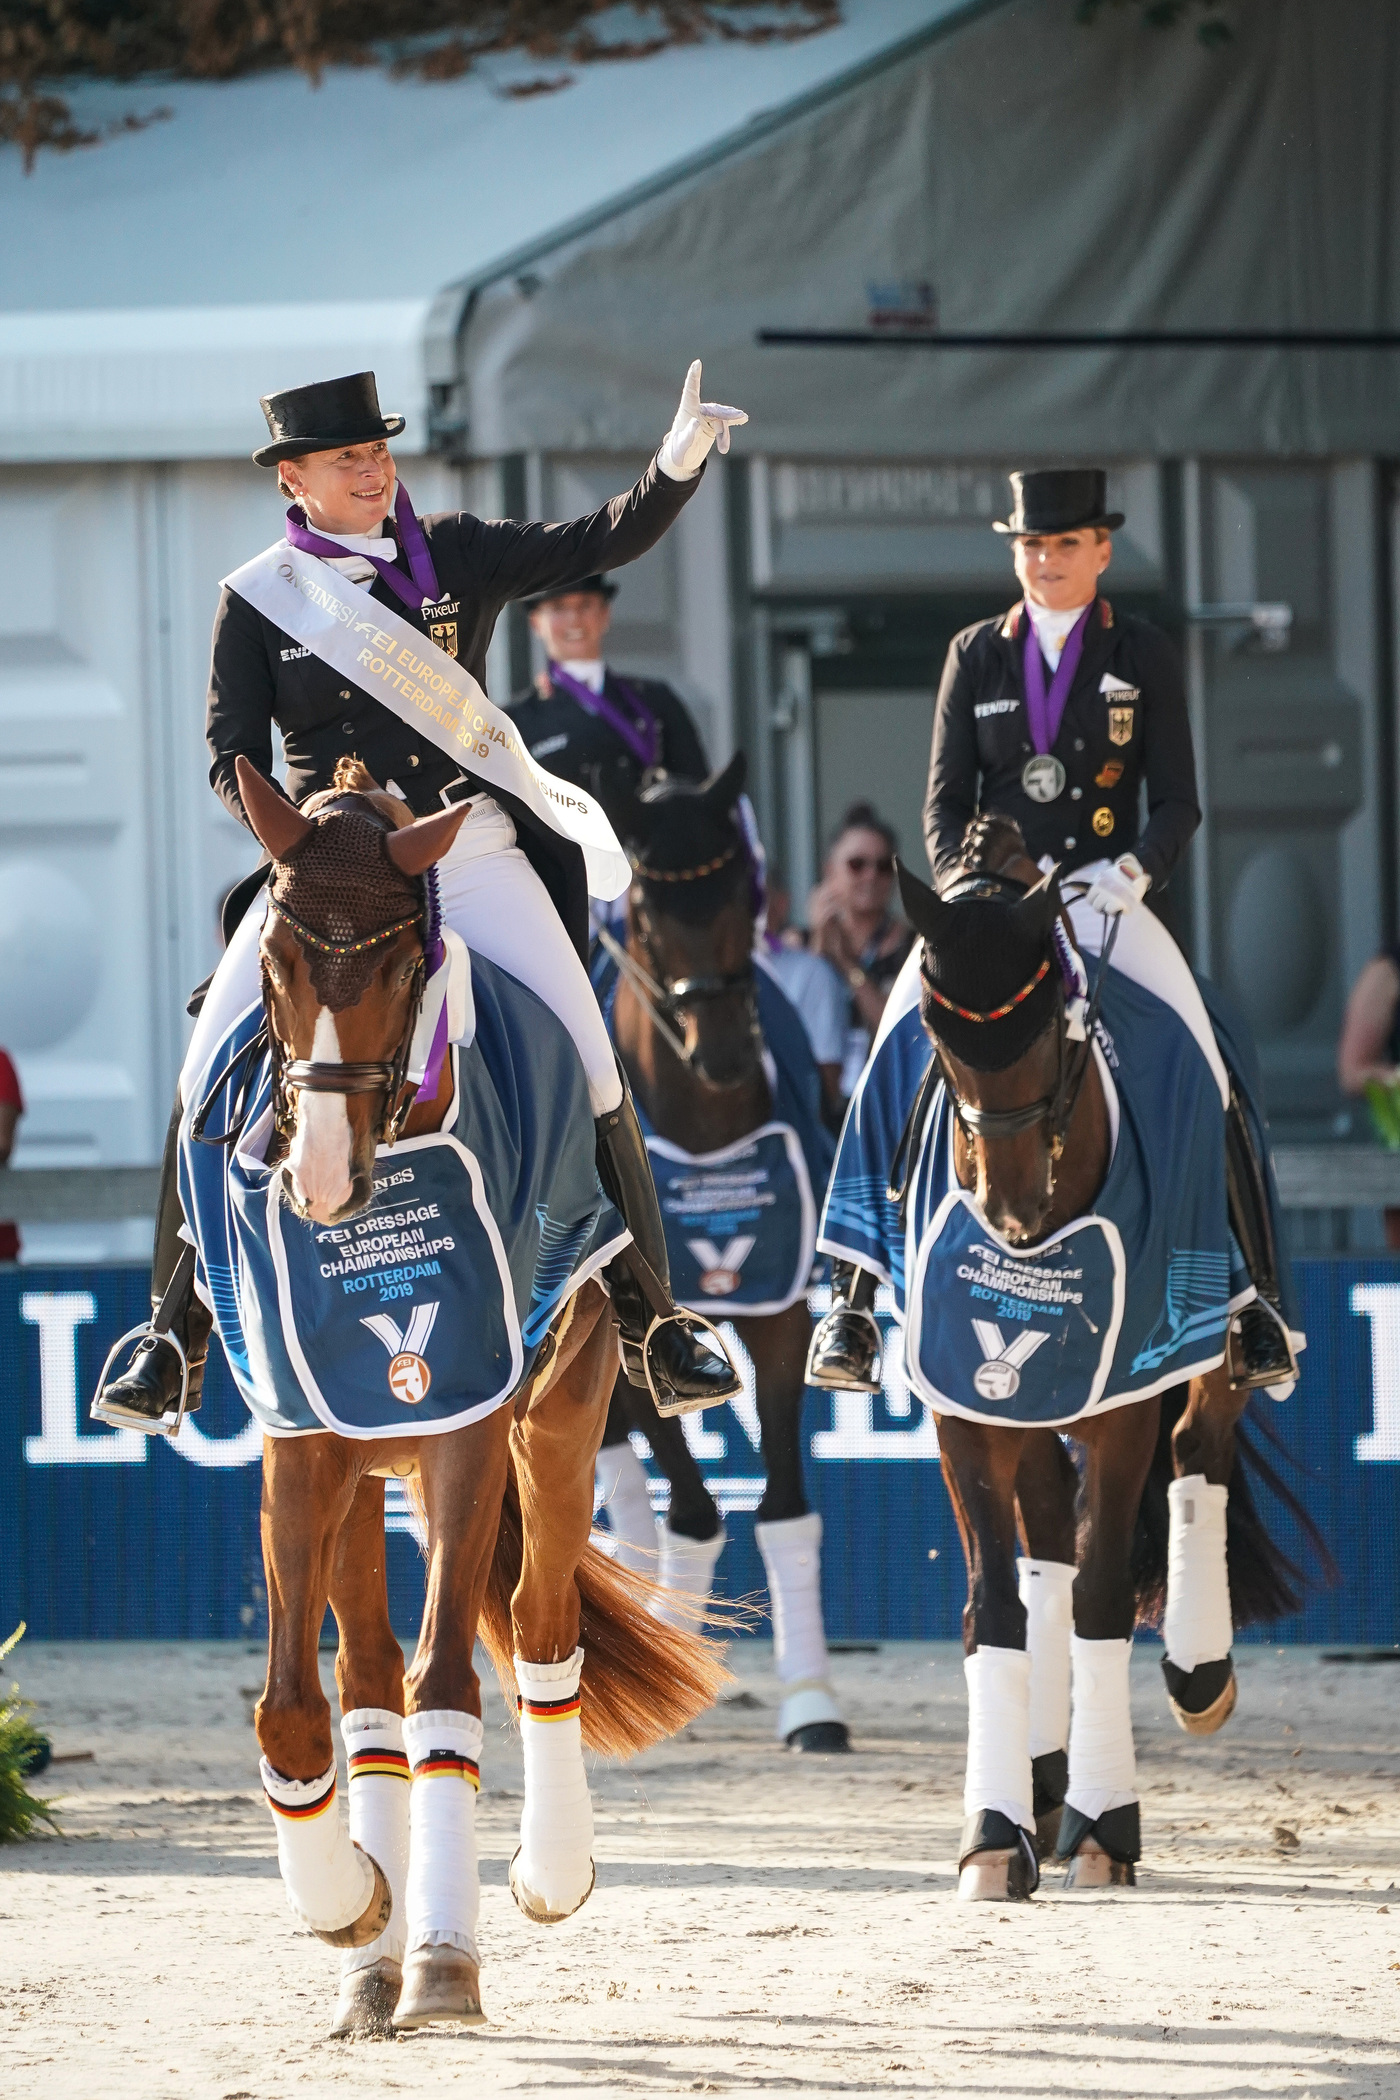 Longines Show Jumping Event: One week of captivating competitions and exceptional performances at the Longines FEI European Championships 2019 4